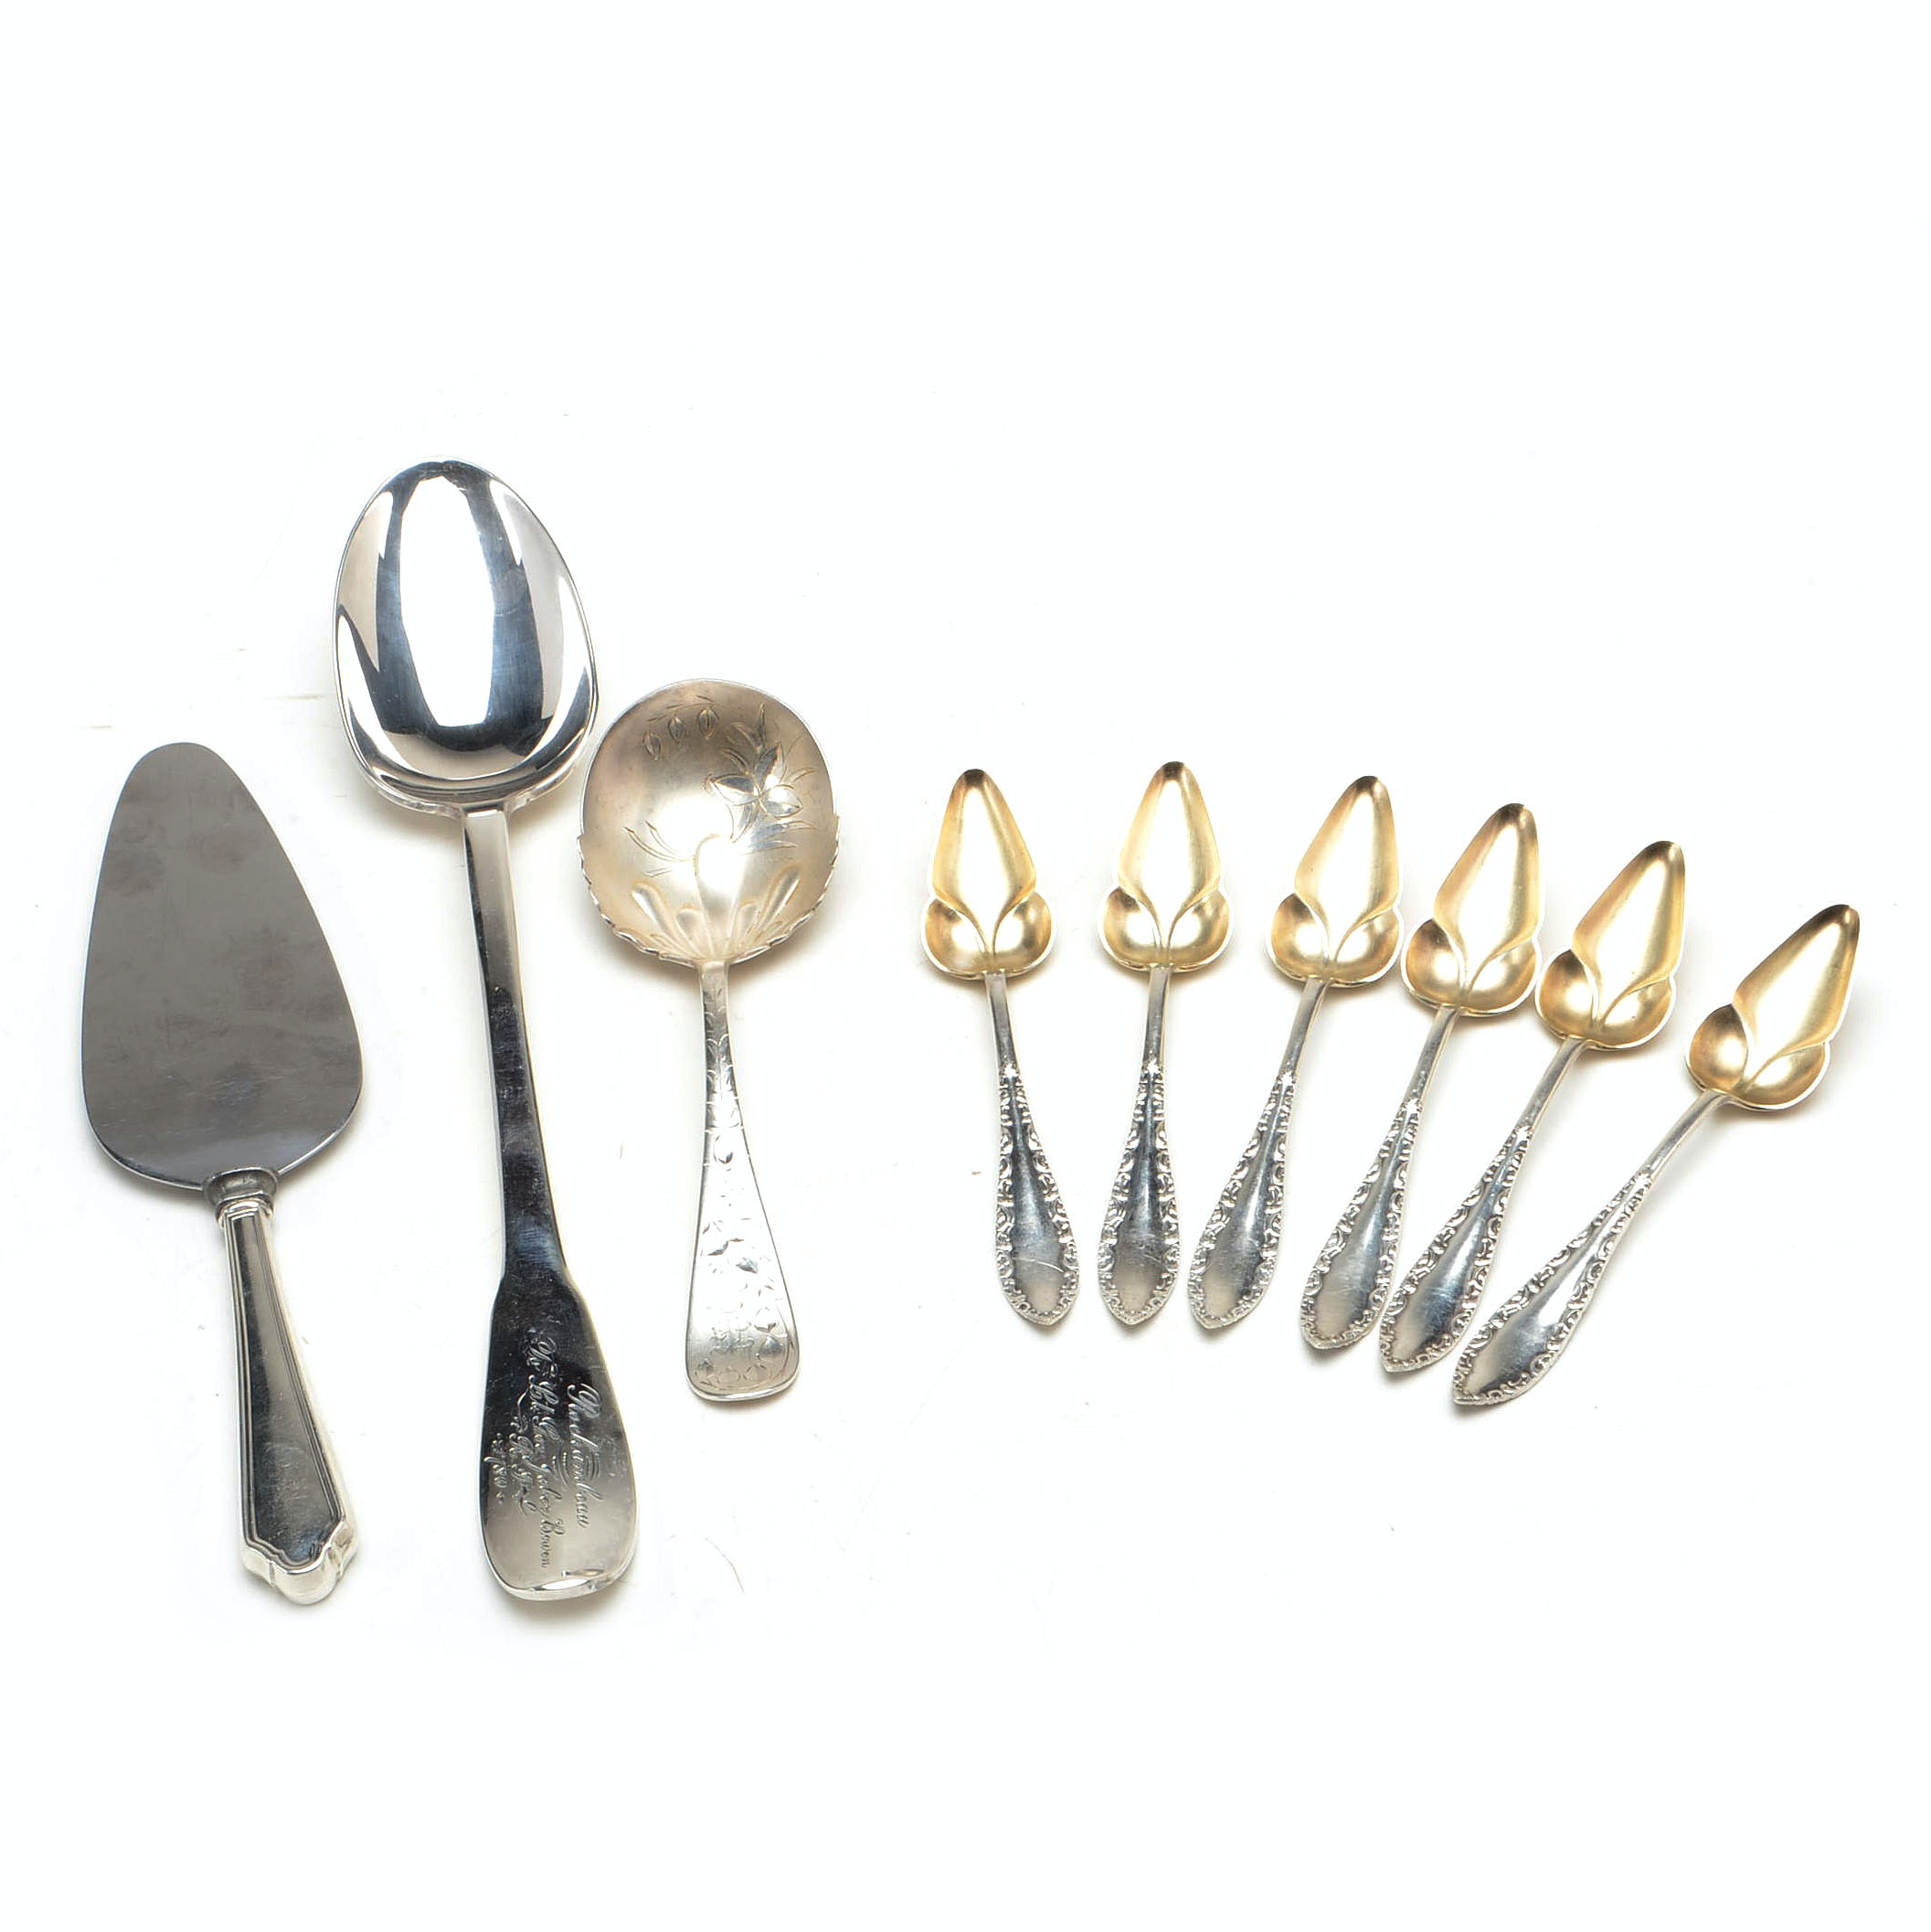 Towle, Gorham, and Other Silver Plate Serving Utensils